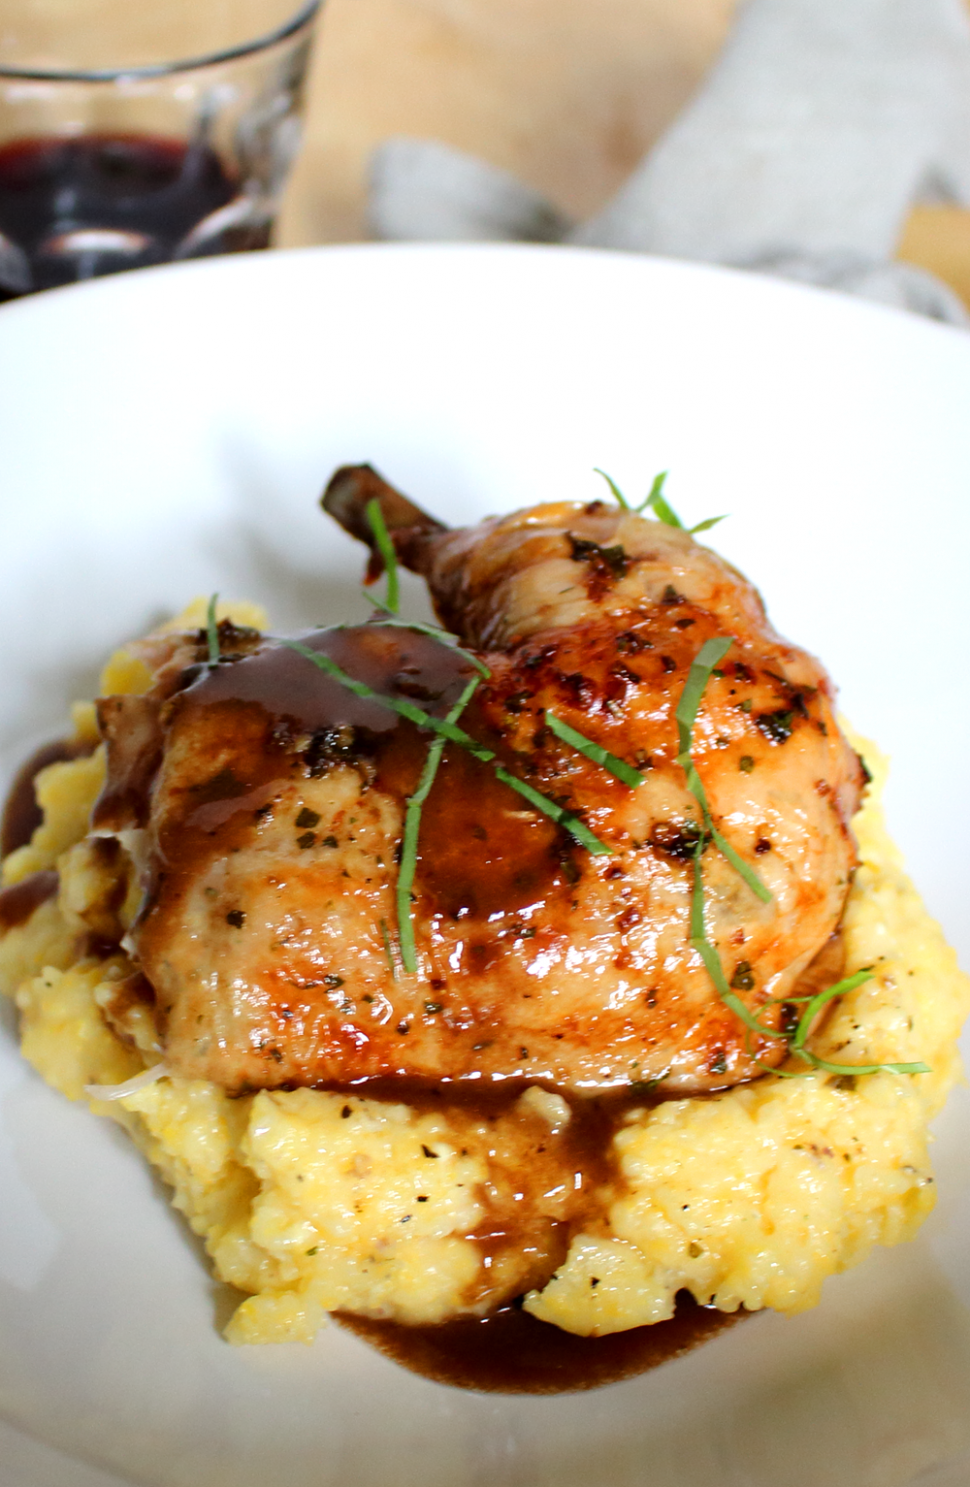 Roast Chicken with Red Wine Demi-Glace and Polenta - Dinner Recipes Fancy